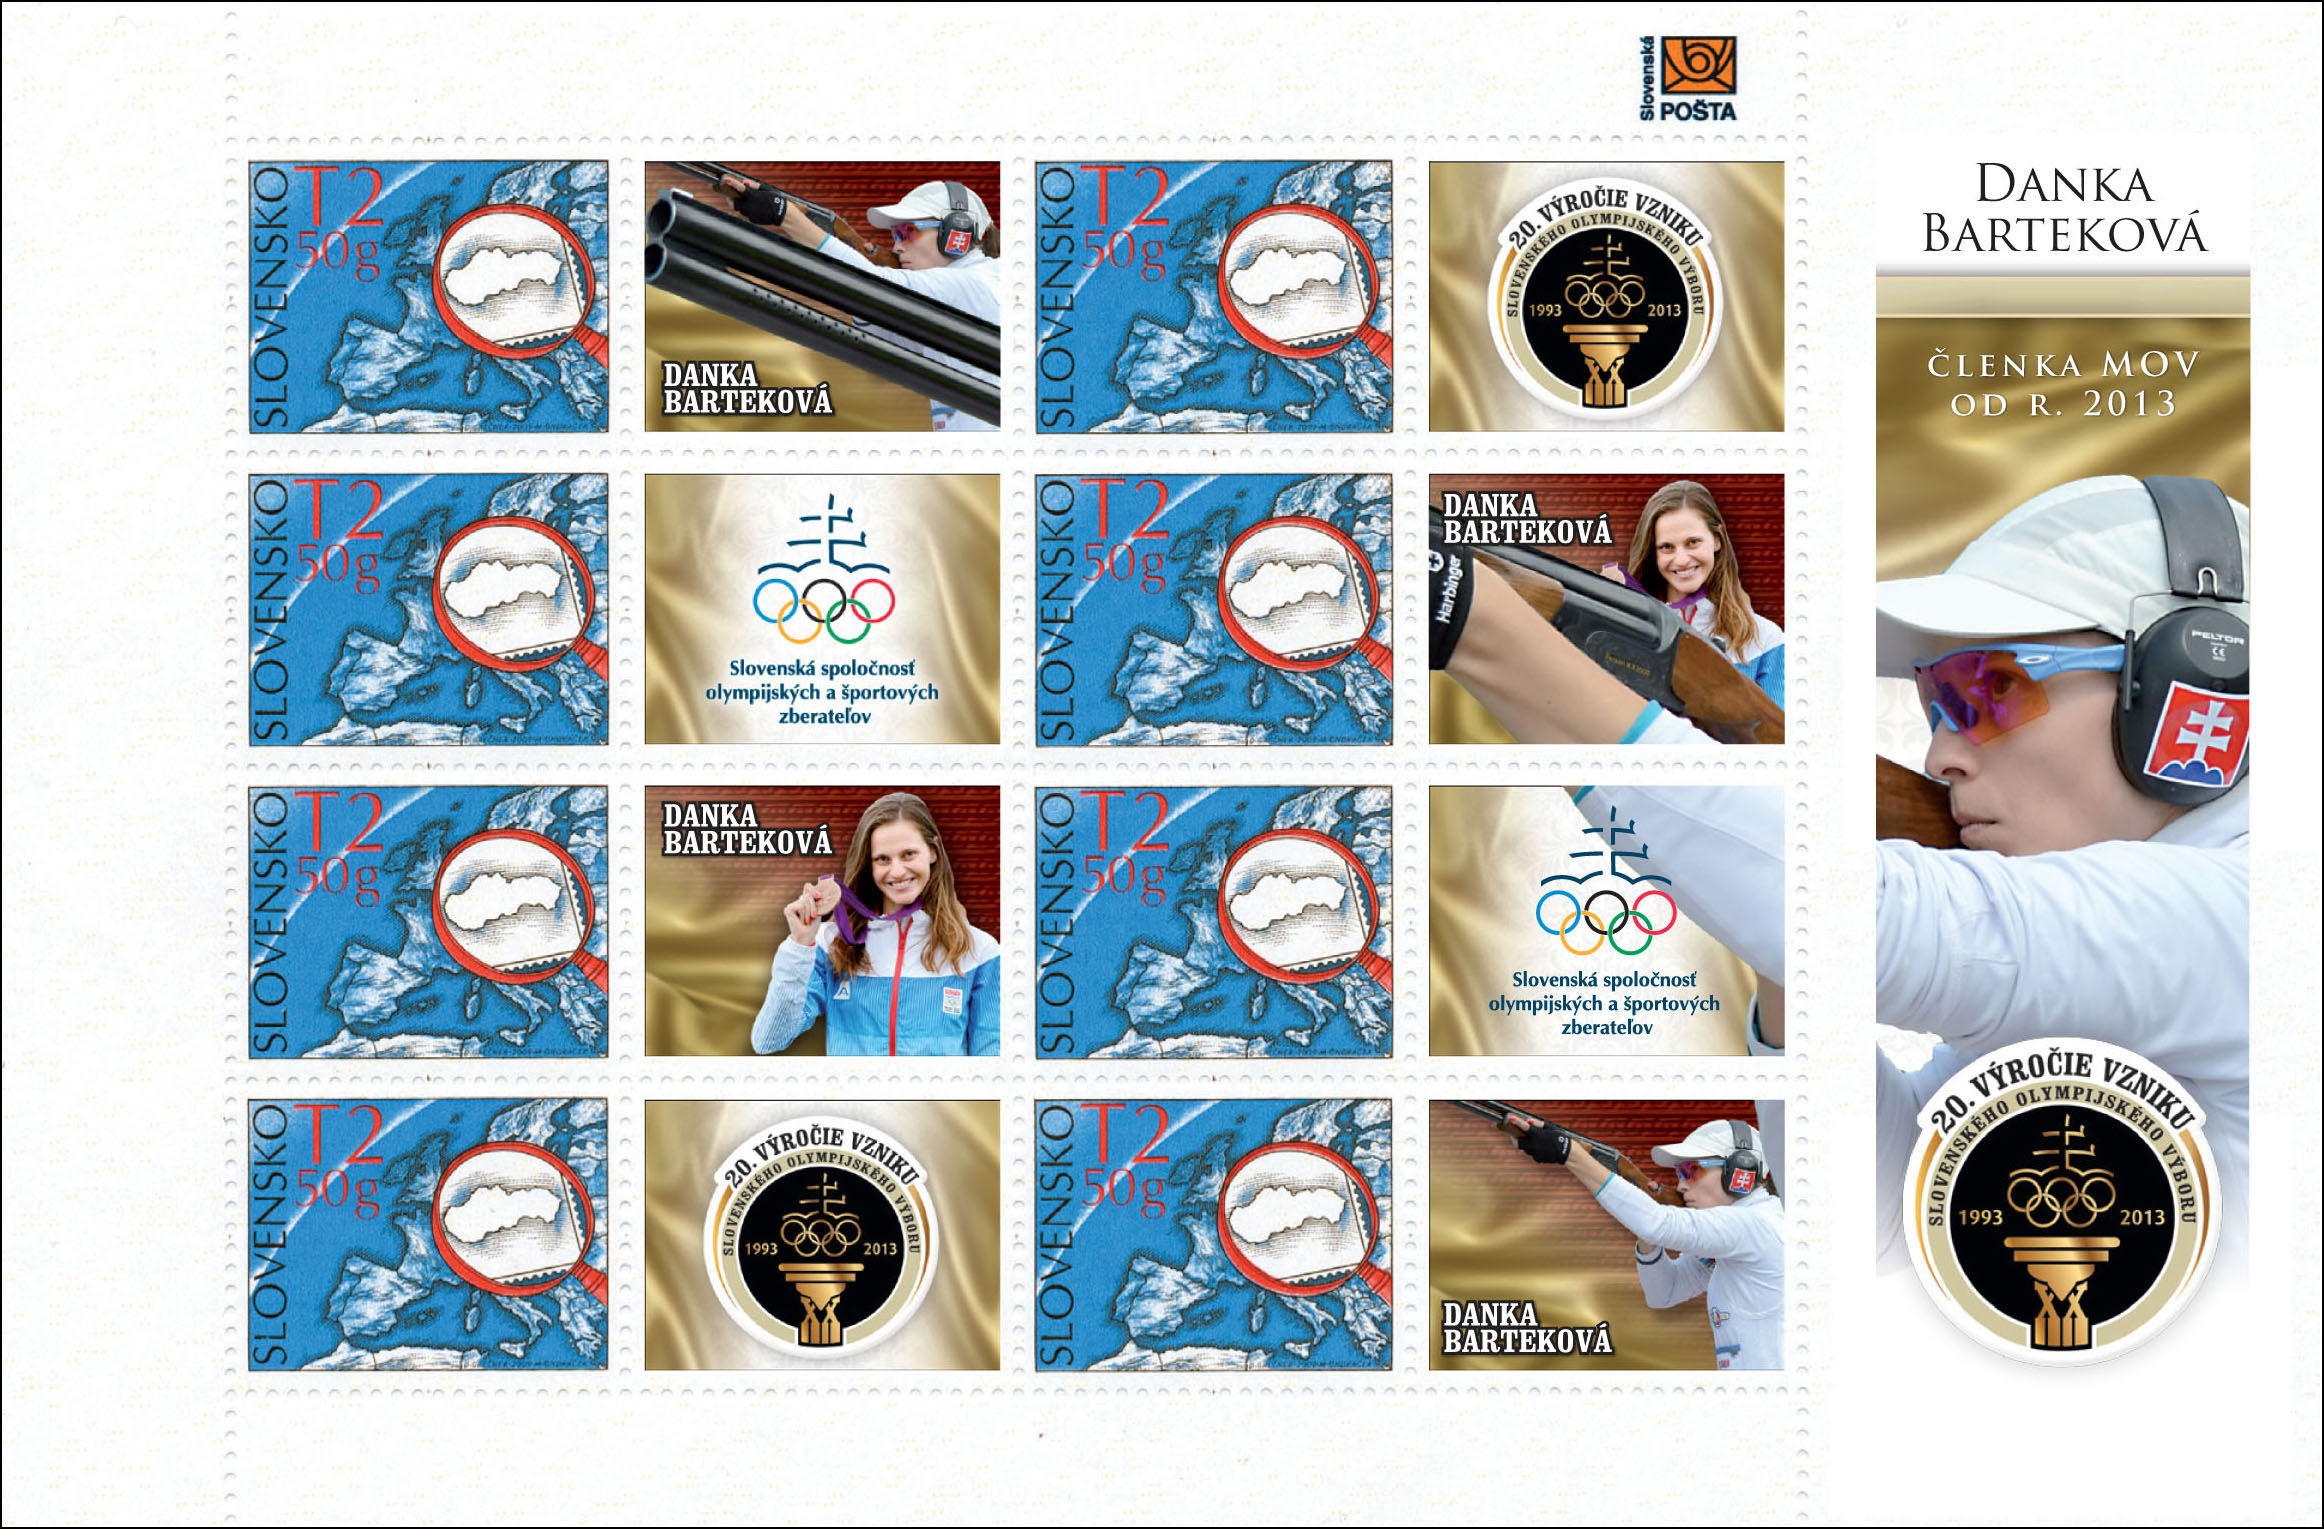 New issues, inaugurations, the most beautiful stamps Issue of personalised adjusted printing sheet (UTL): 20th anniversary of the SOC - Danka Bartekova member of the IOC